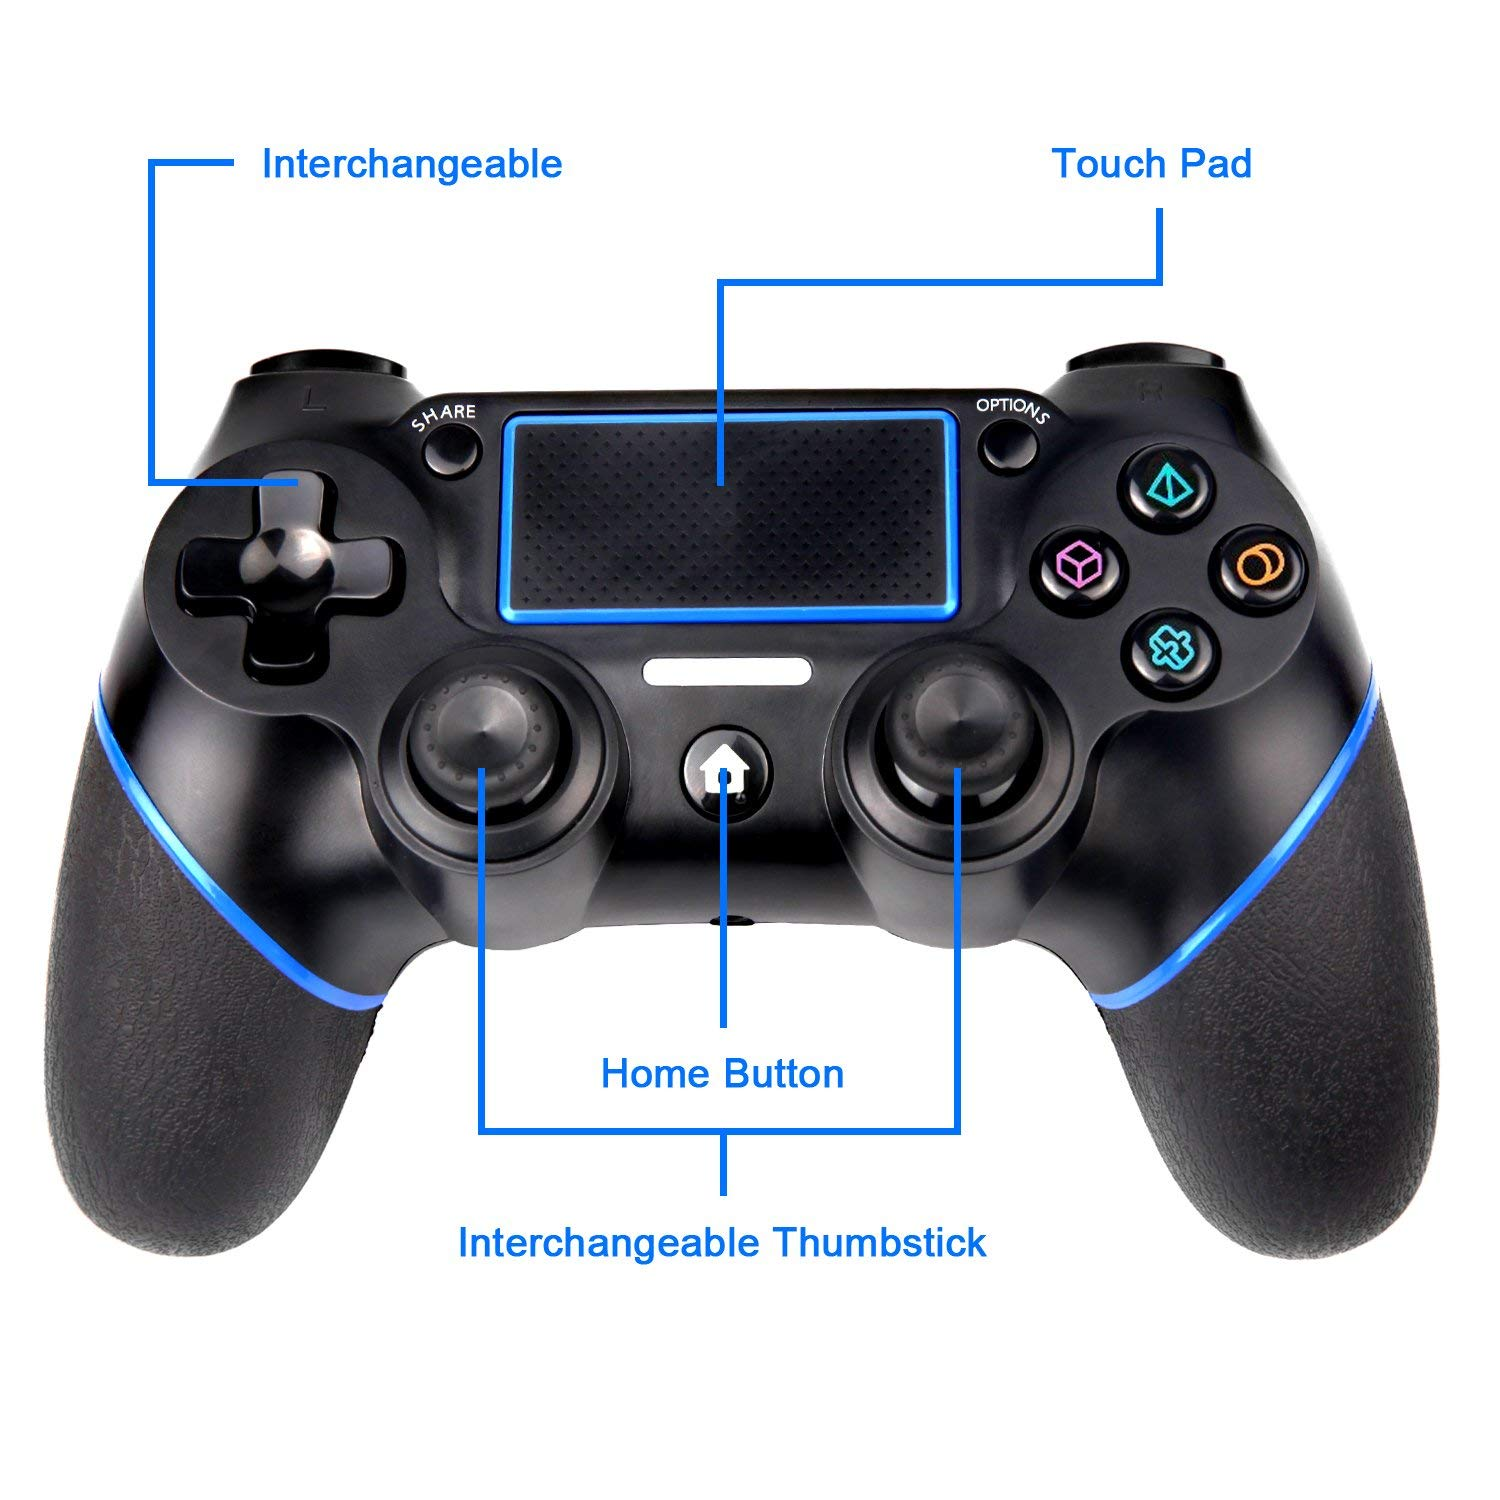 PS4 Controller, Sades C200 Wireless Bluetooth Gamepad DualShock 4  Controller for Playstation 4 Touch Panel Joypad with Dual Vibration Game  Remote